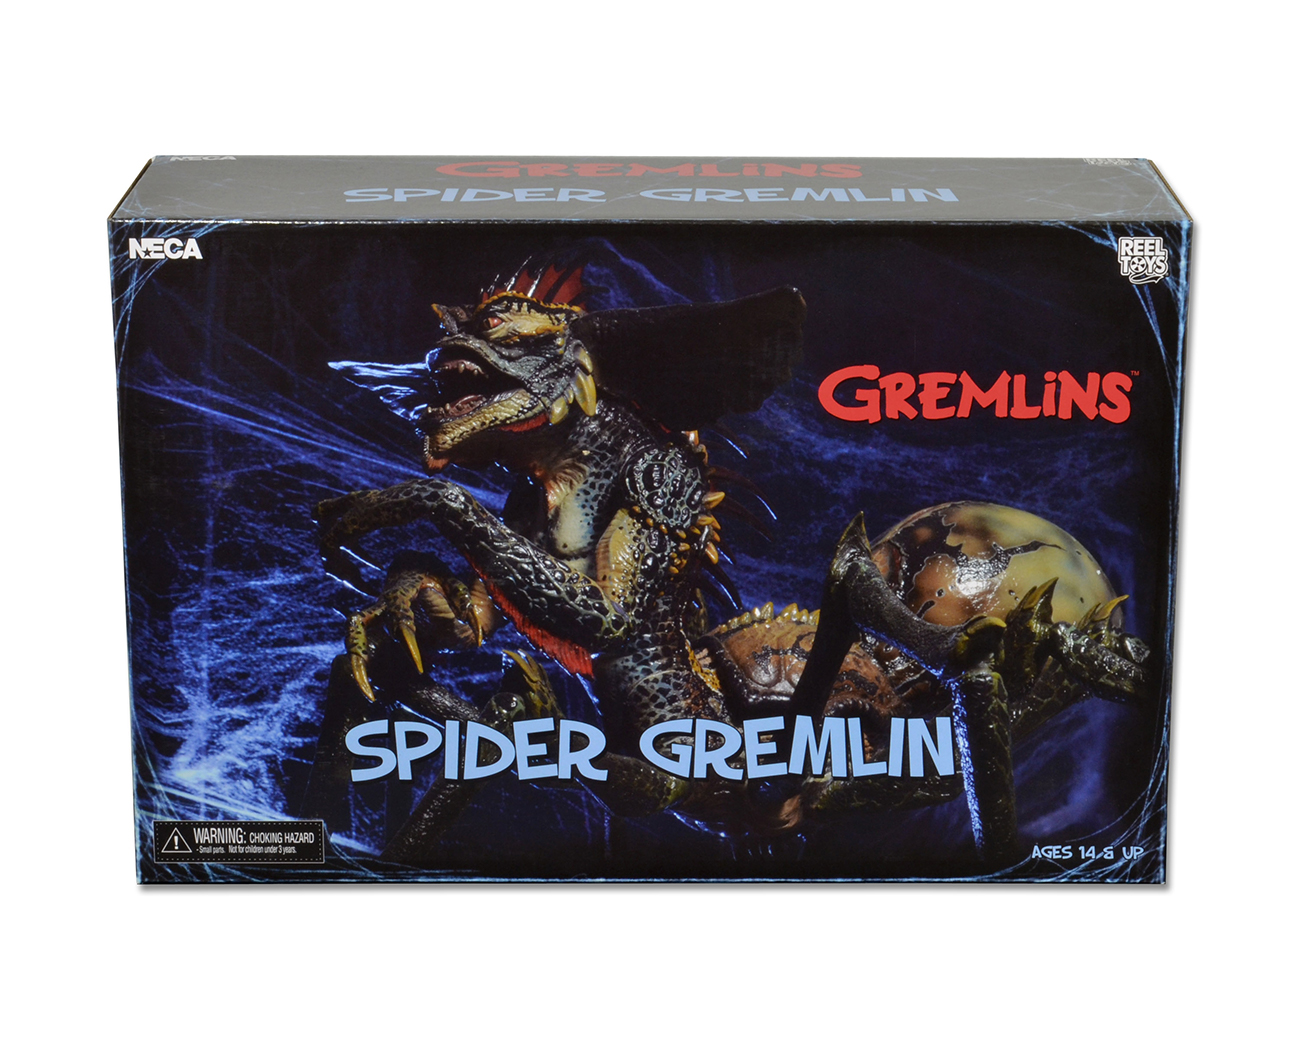 NECA Toys Shipping This Week – Gremlins 2 – Deluxe Spider Gremlin & Team Fortress 2 Figures